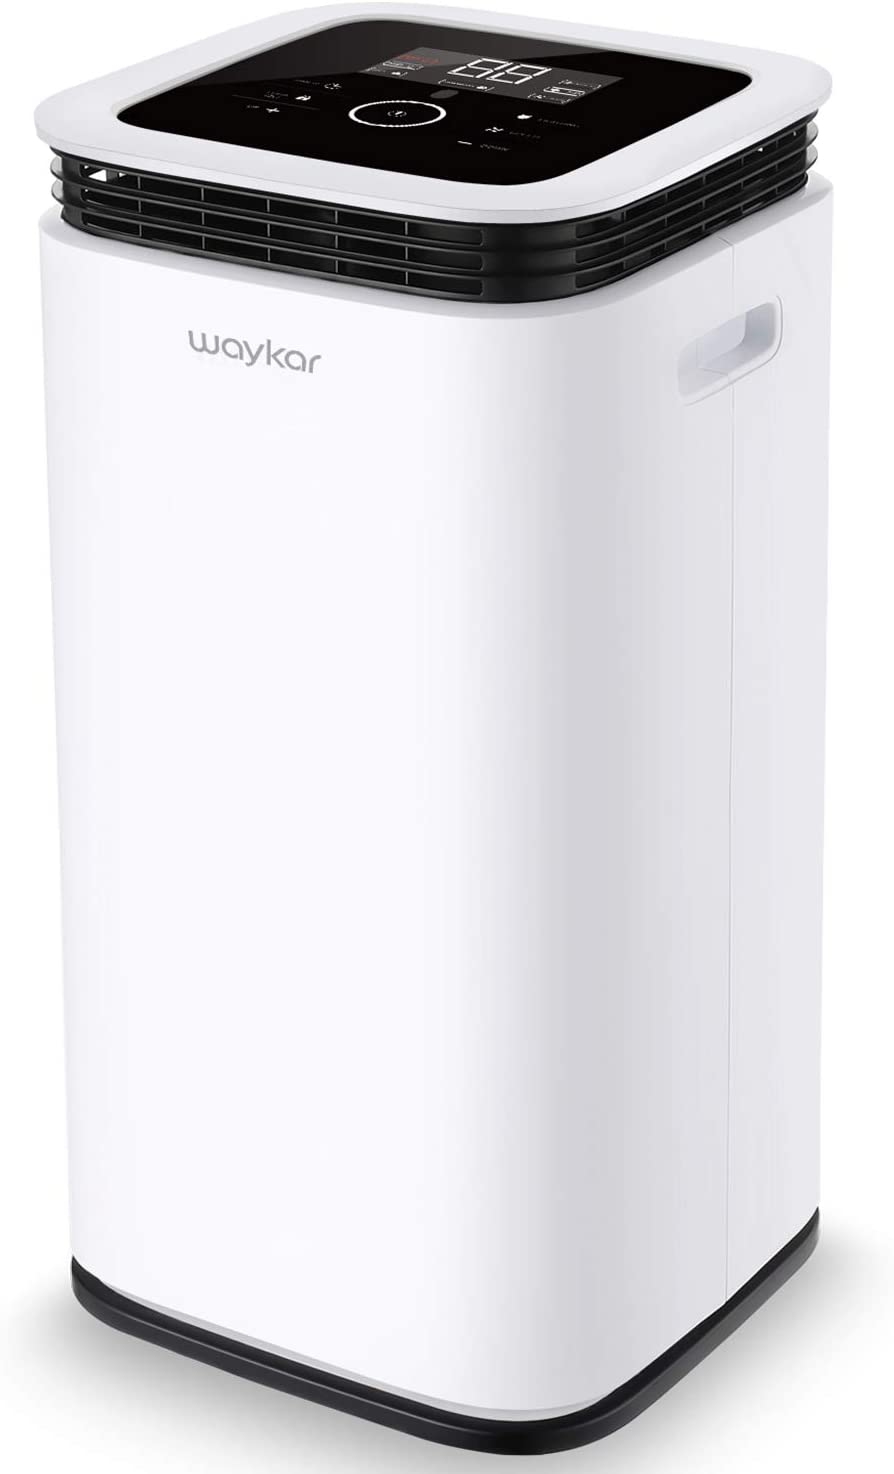 Waykar 70 Pint Best Budget Dehumidifier